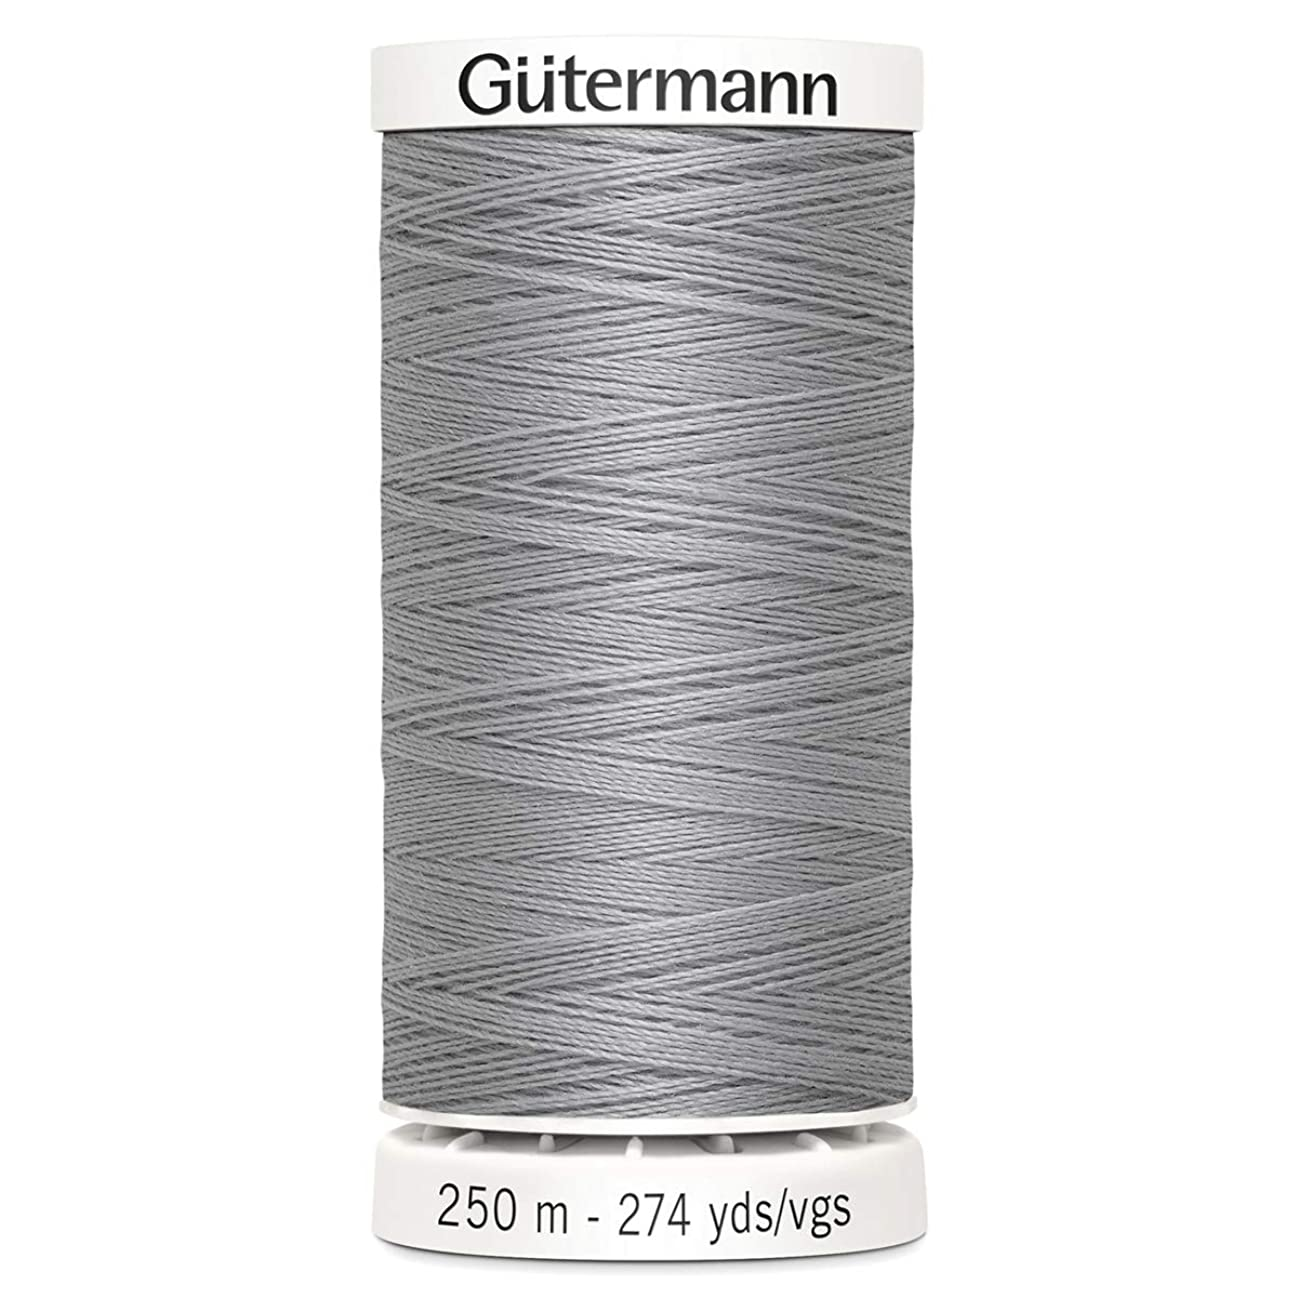 Gutermann Sew All Polyester Thread, 250mtr, Fog Grey (0038), 5.5 x 2.7 x 2.7 cm